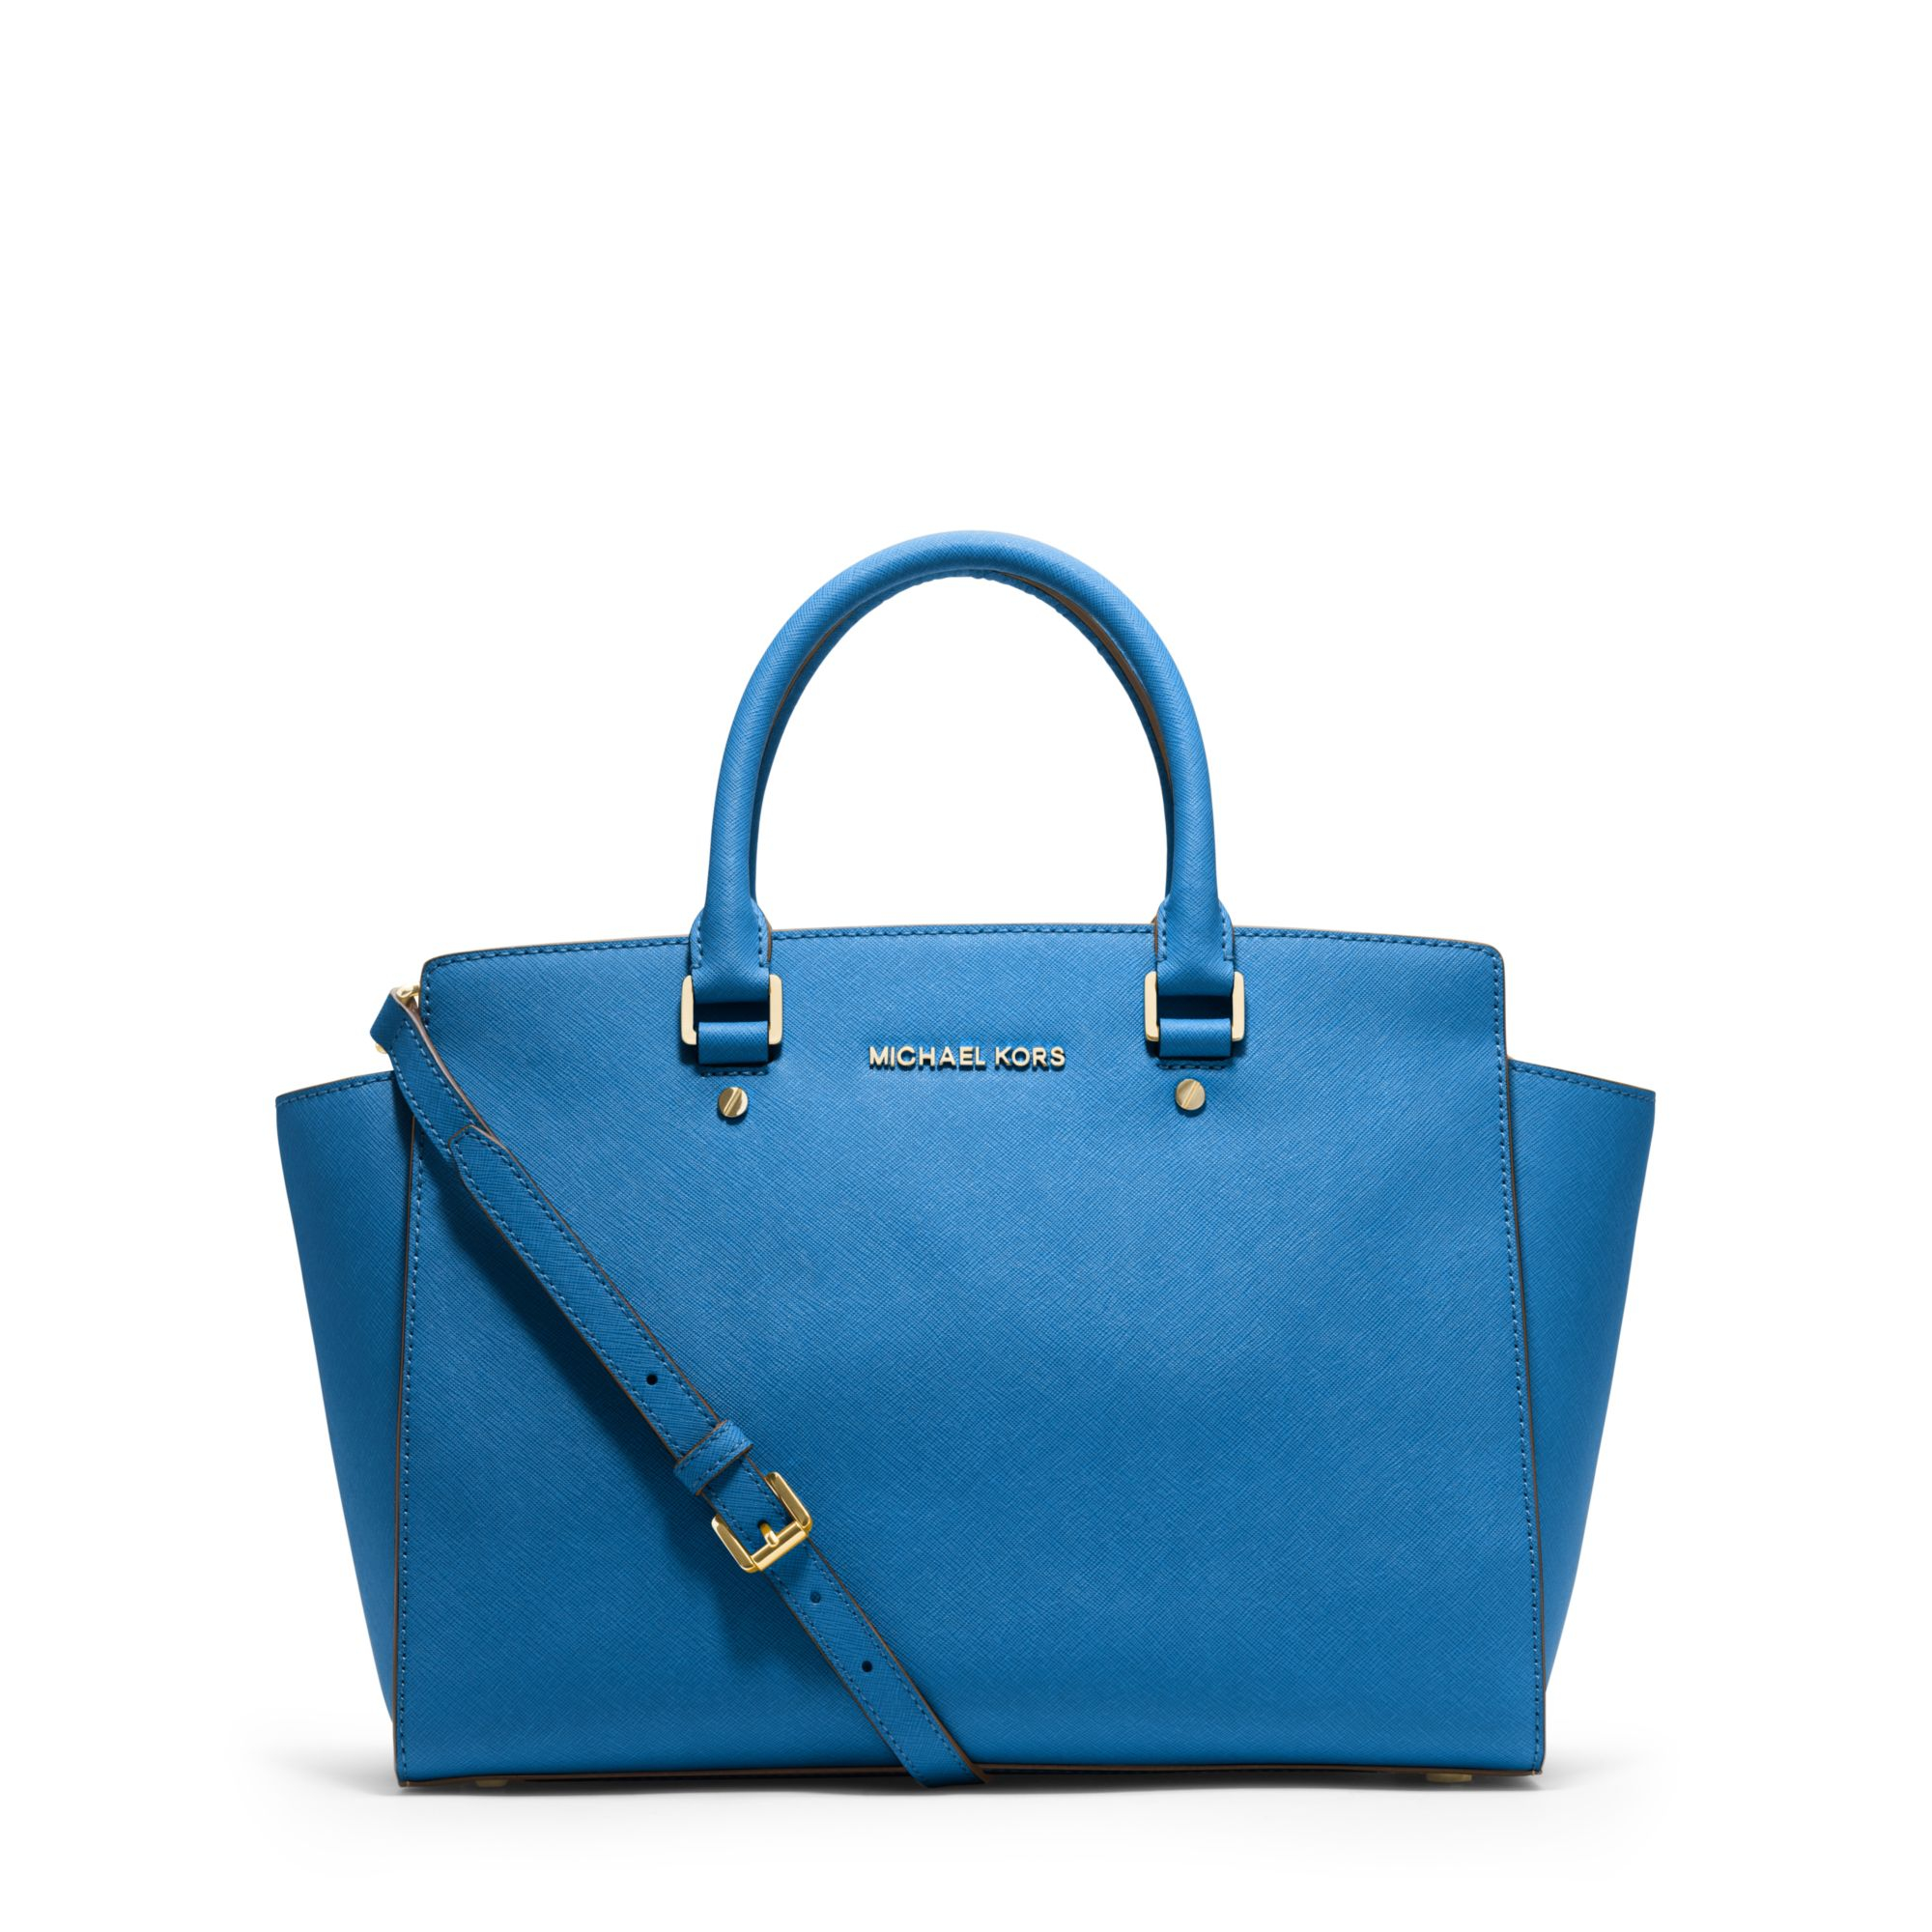 michael kors selma large saffiano leather satchel in blue. Black Bedroom Furniture Sets. Home Design Ideas